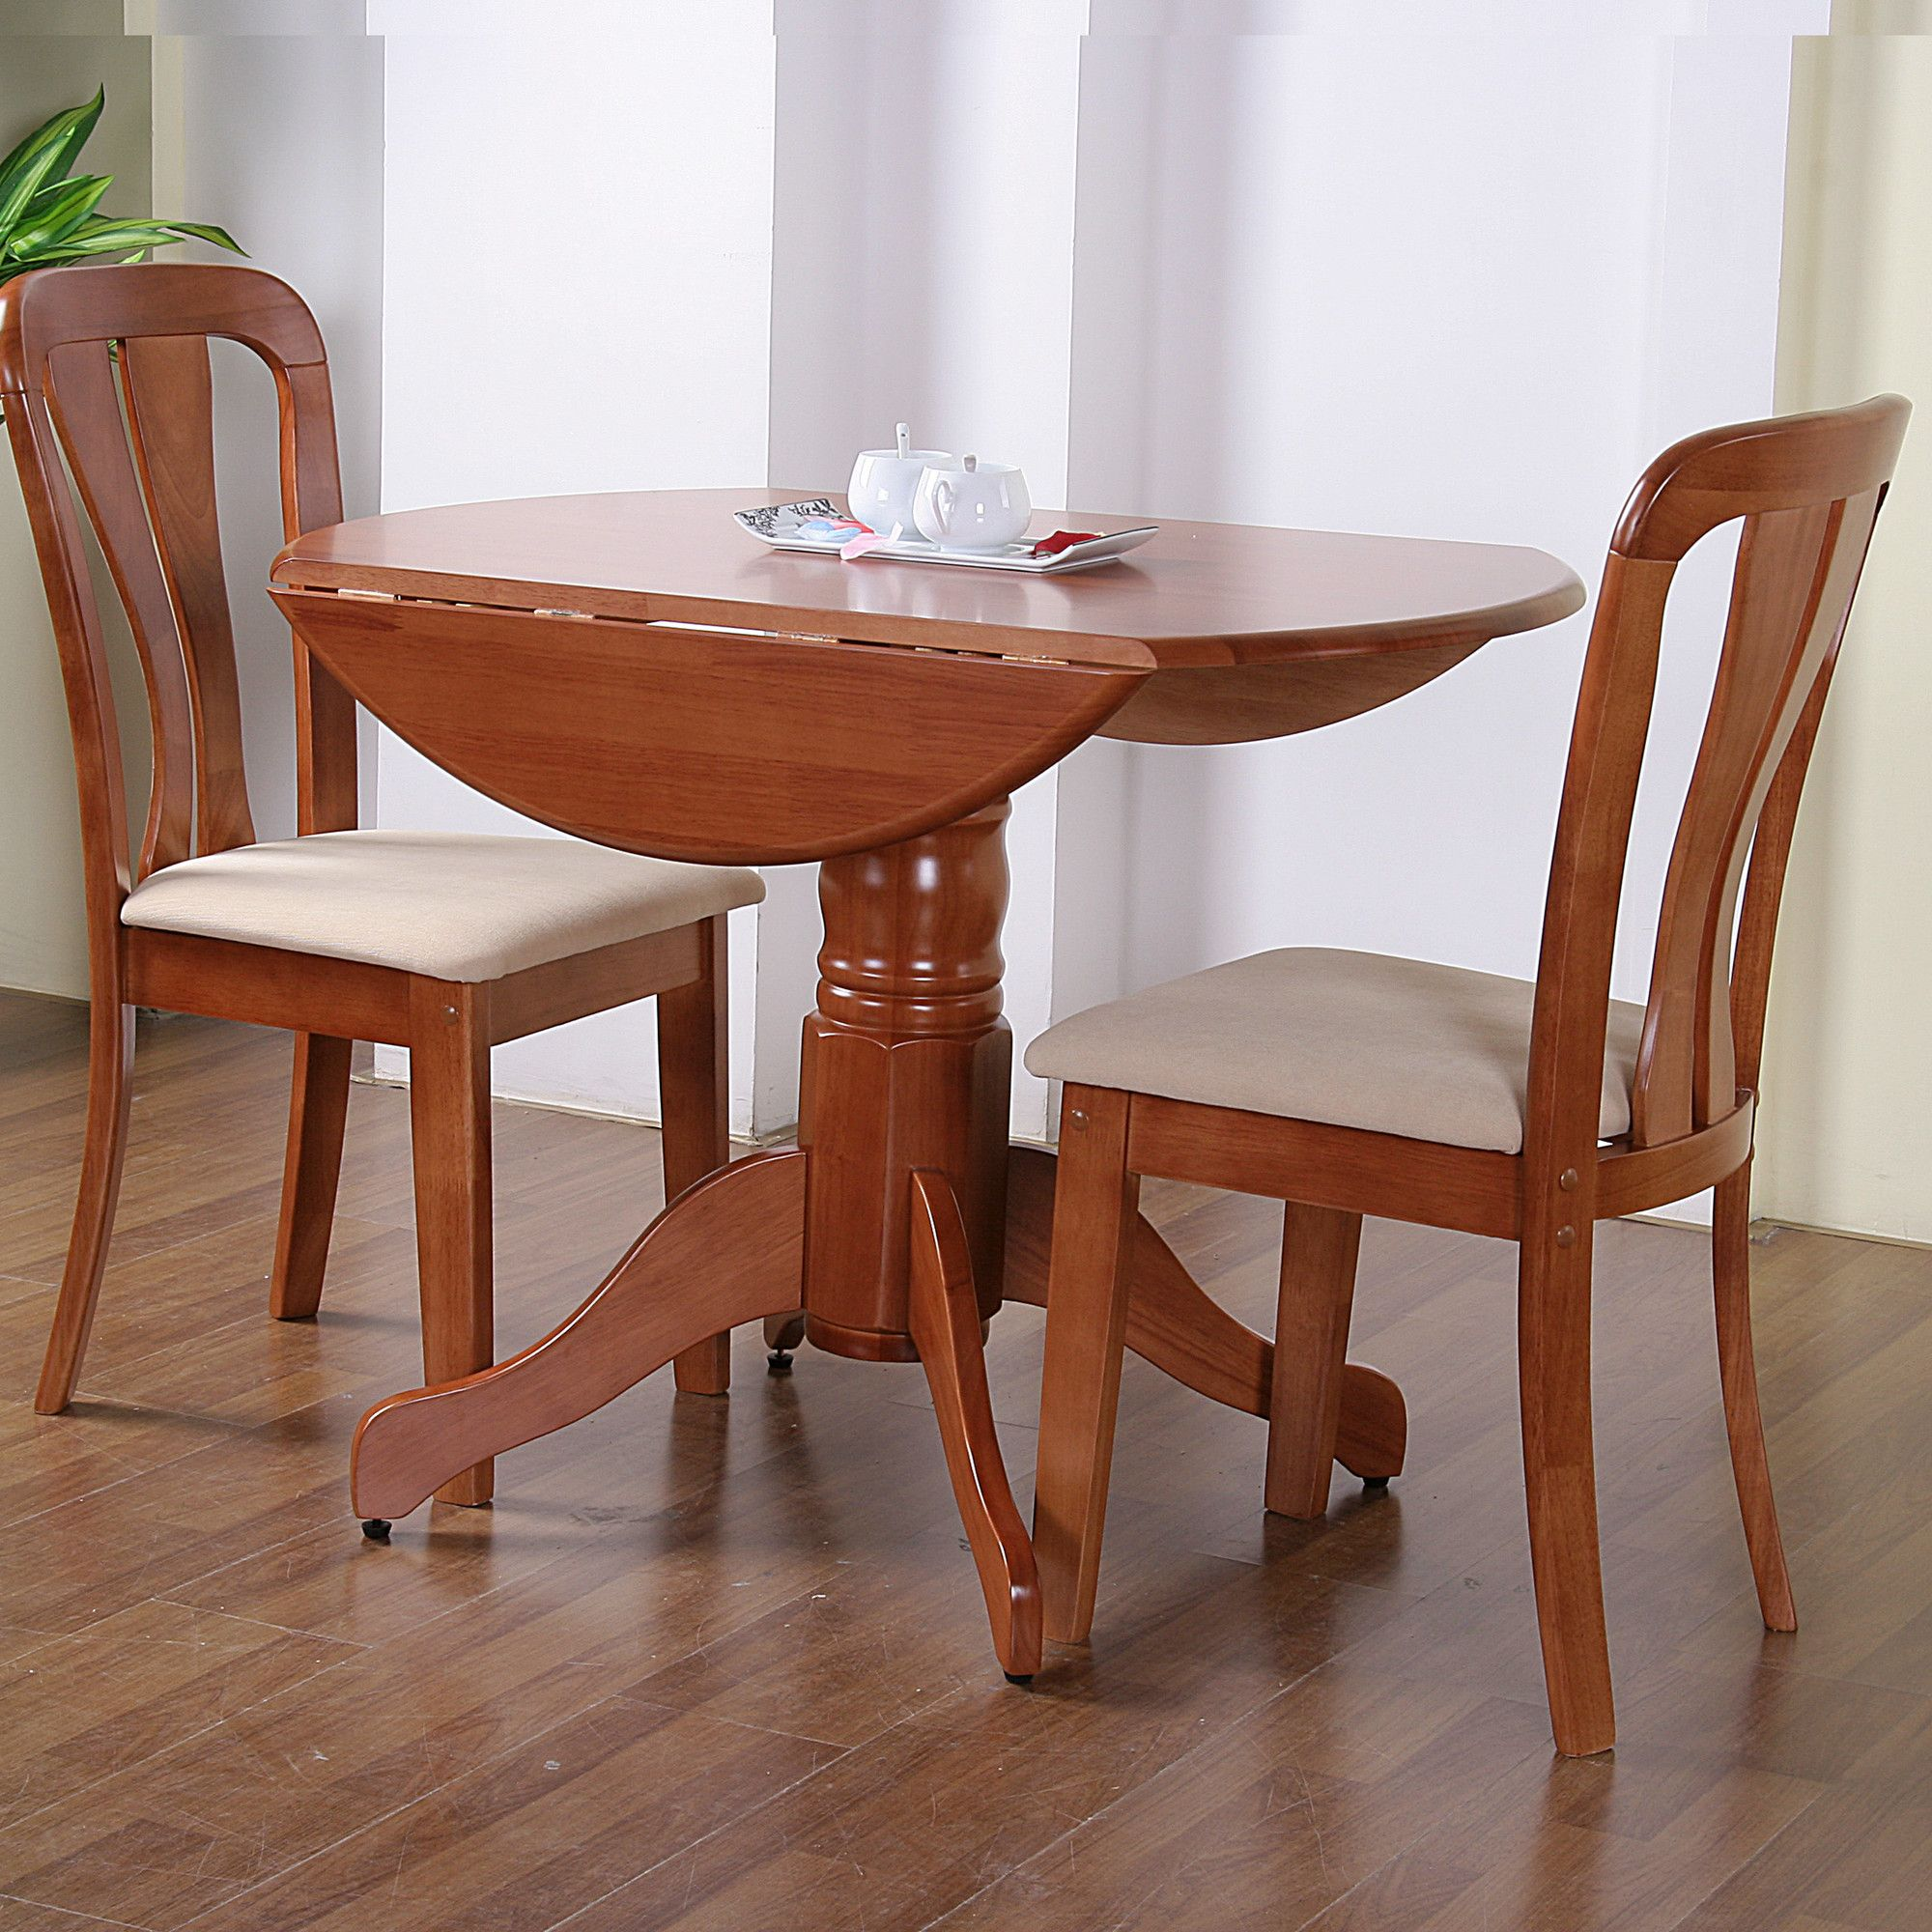 G&P Furniture Windsor House 3-Piece Bristol Round Drop Leaf Dining Set - Cherry at Tesco Direct